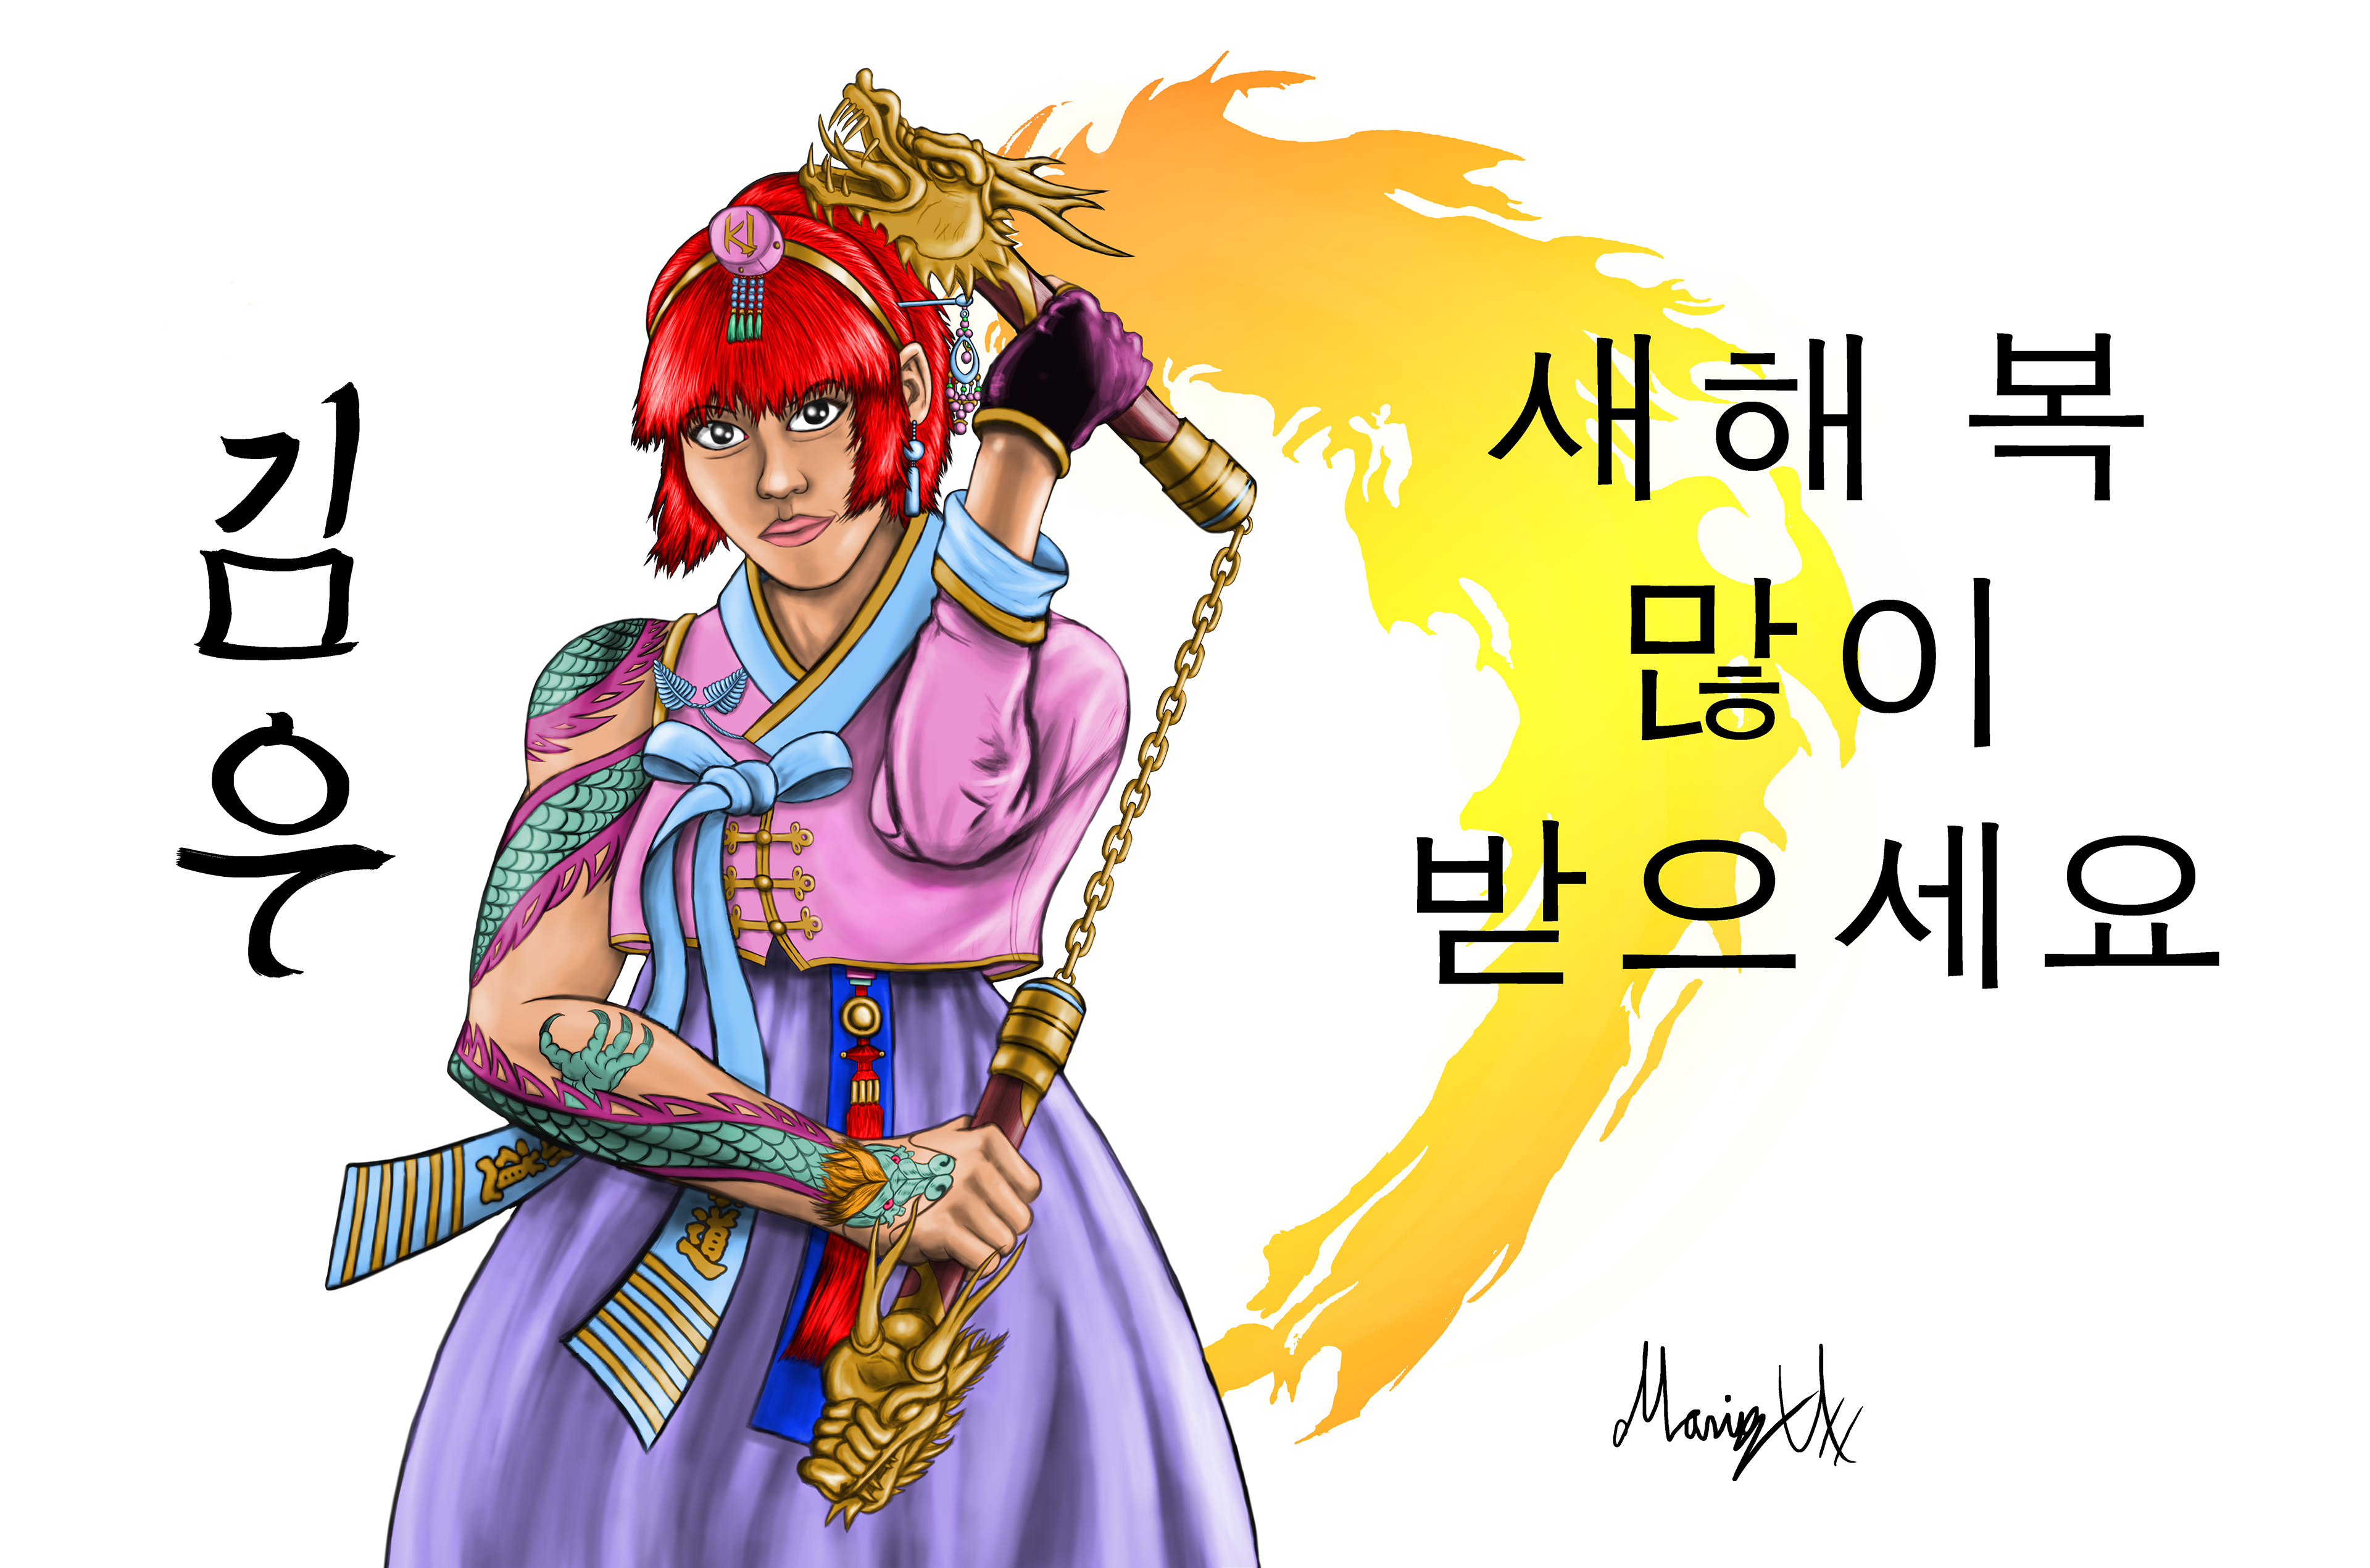 the korean hangul letters on the left is kim wus name in spelled in korean and the right is an expression that say happy korean new year since her theme